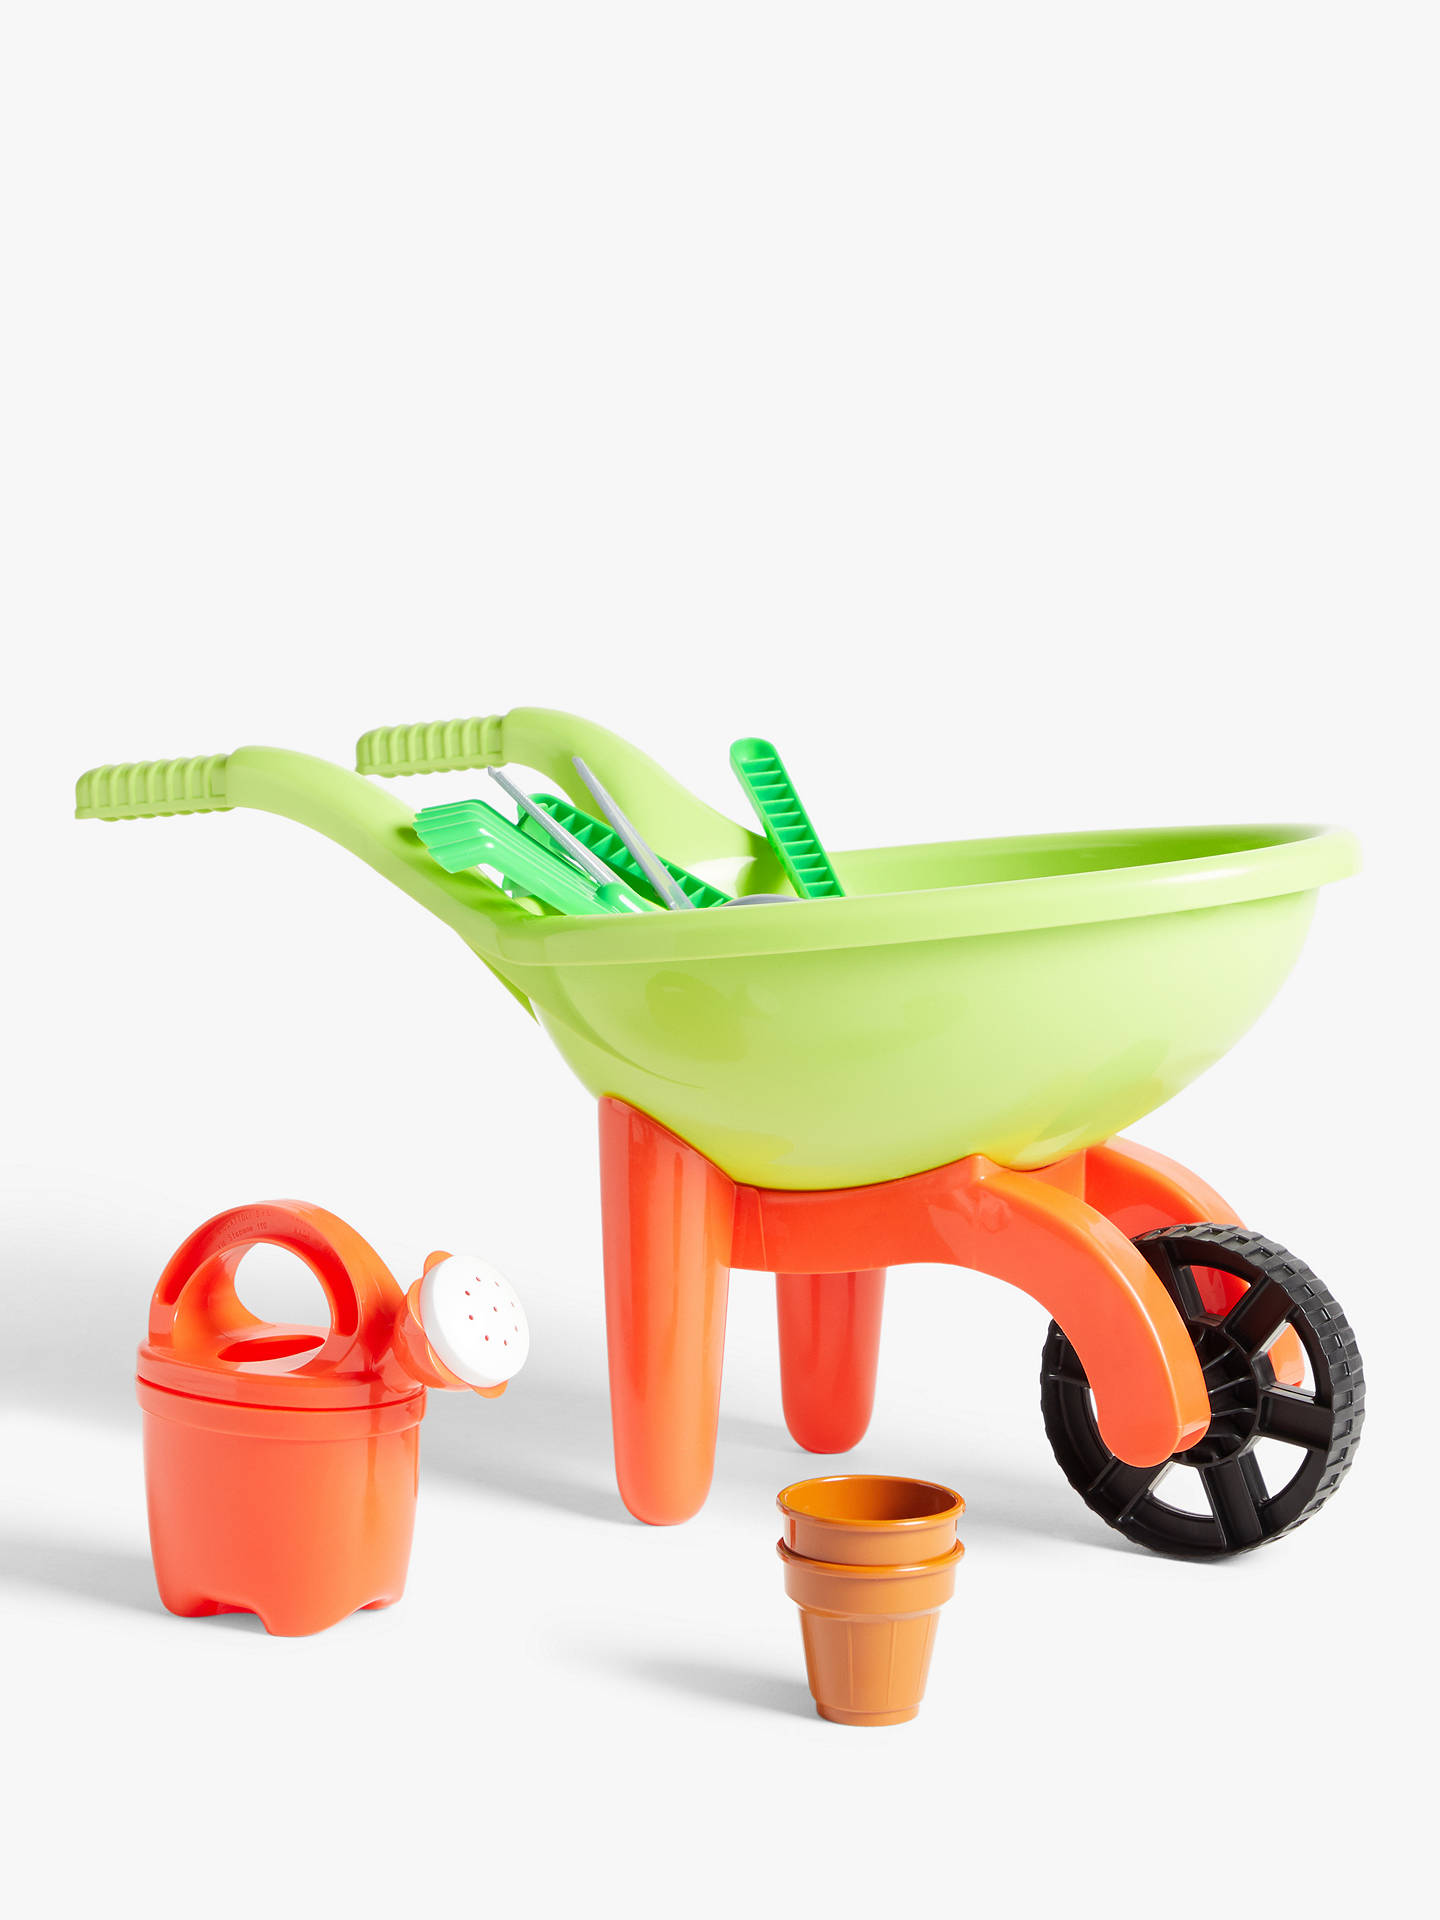 BuyJohn Lewis U0026 Partners Garden Wheelbarrow And Tools Online At  Johnlewis.com